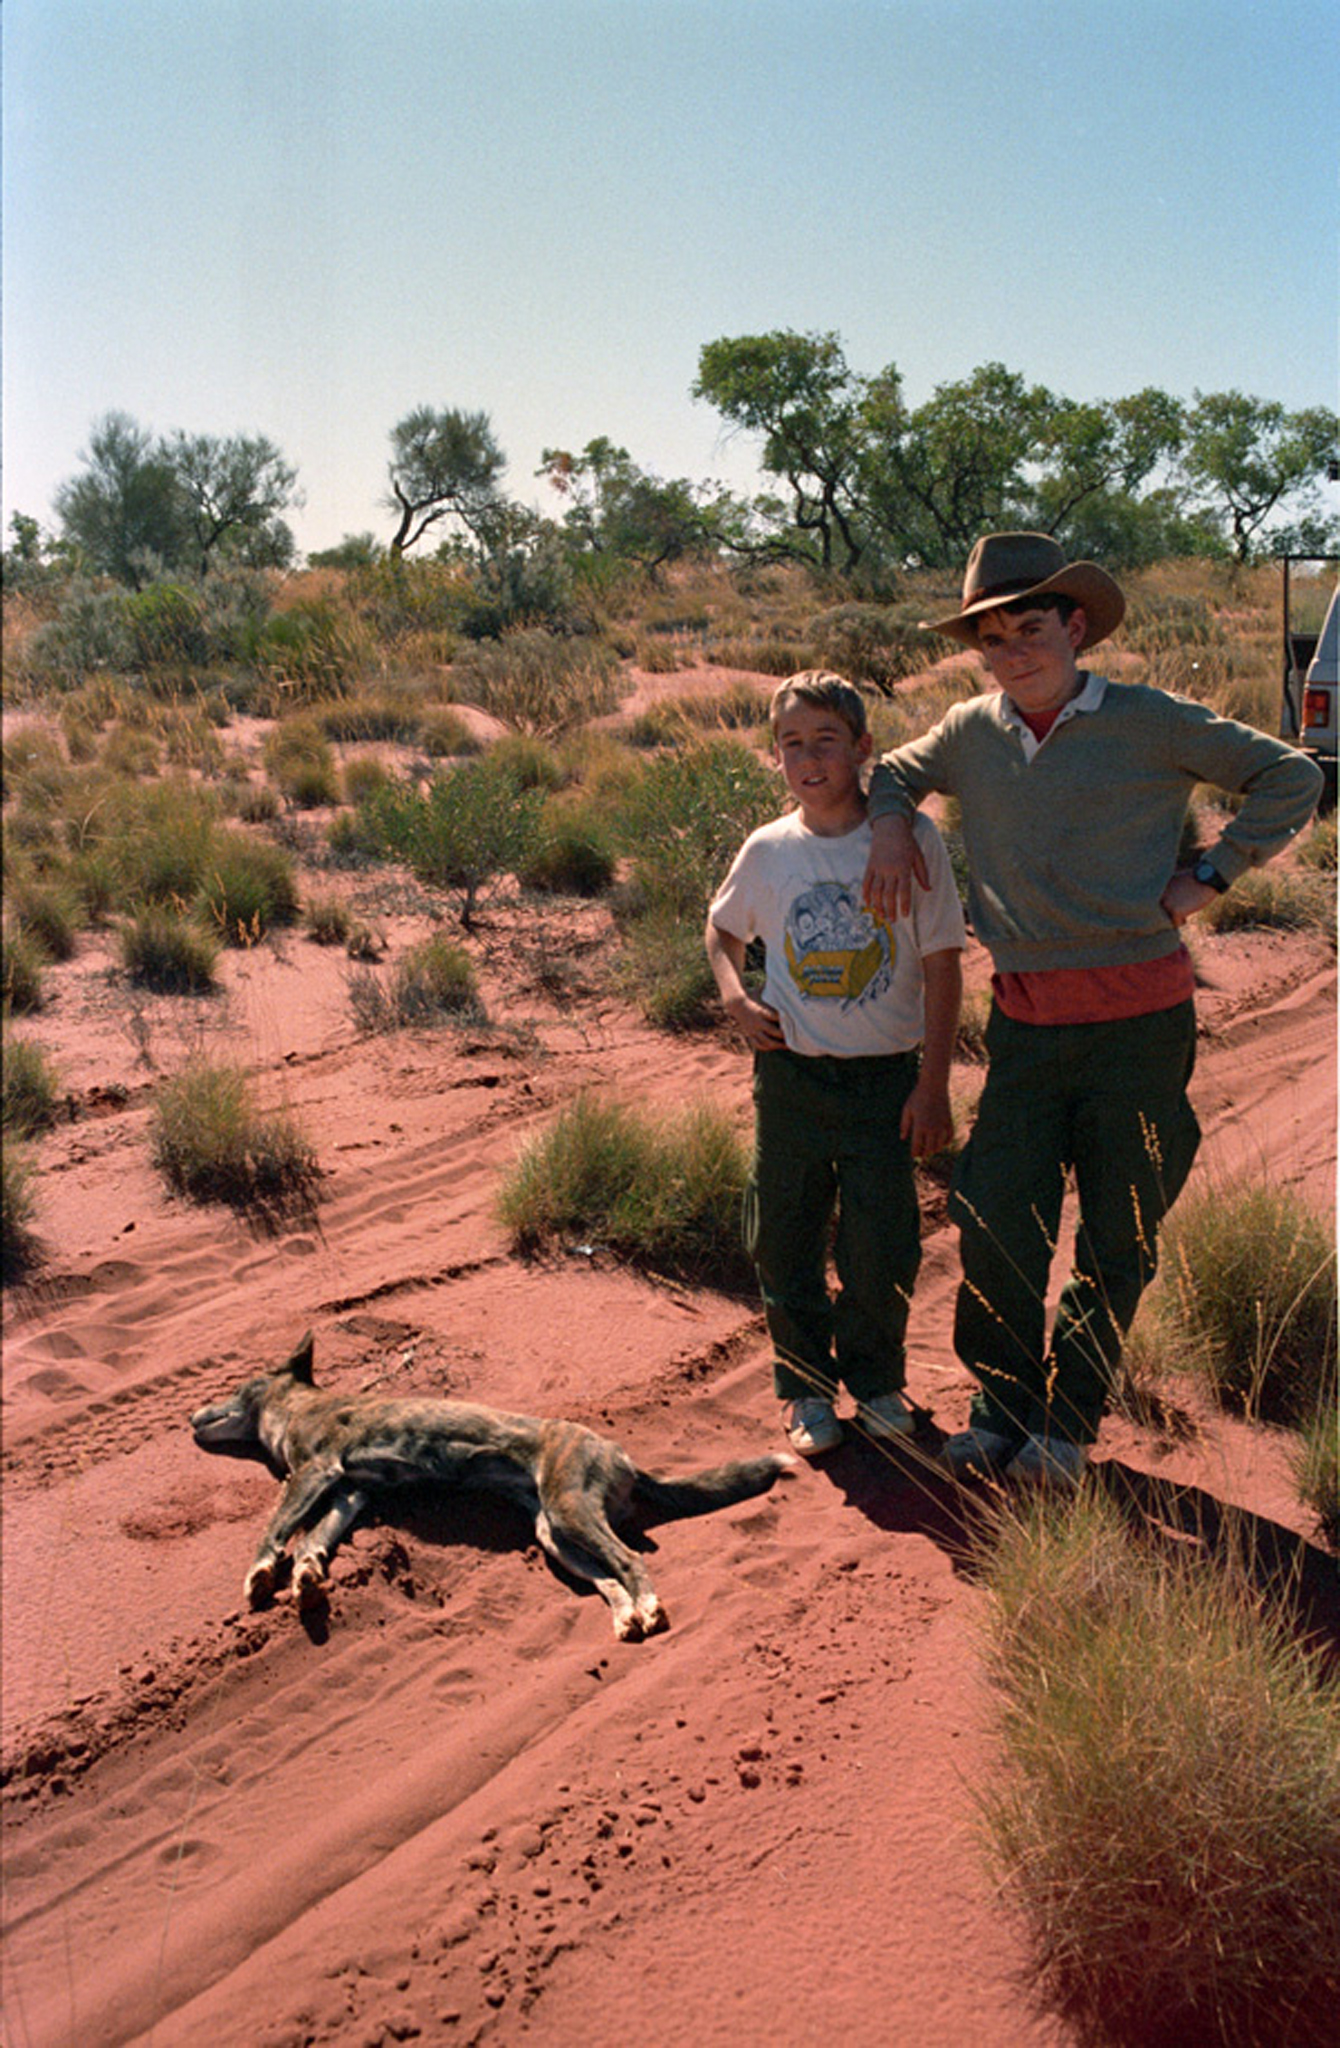 We didn't actually kill this dingo